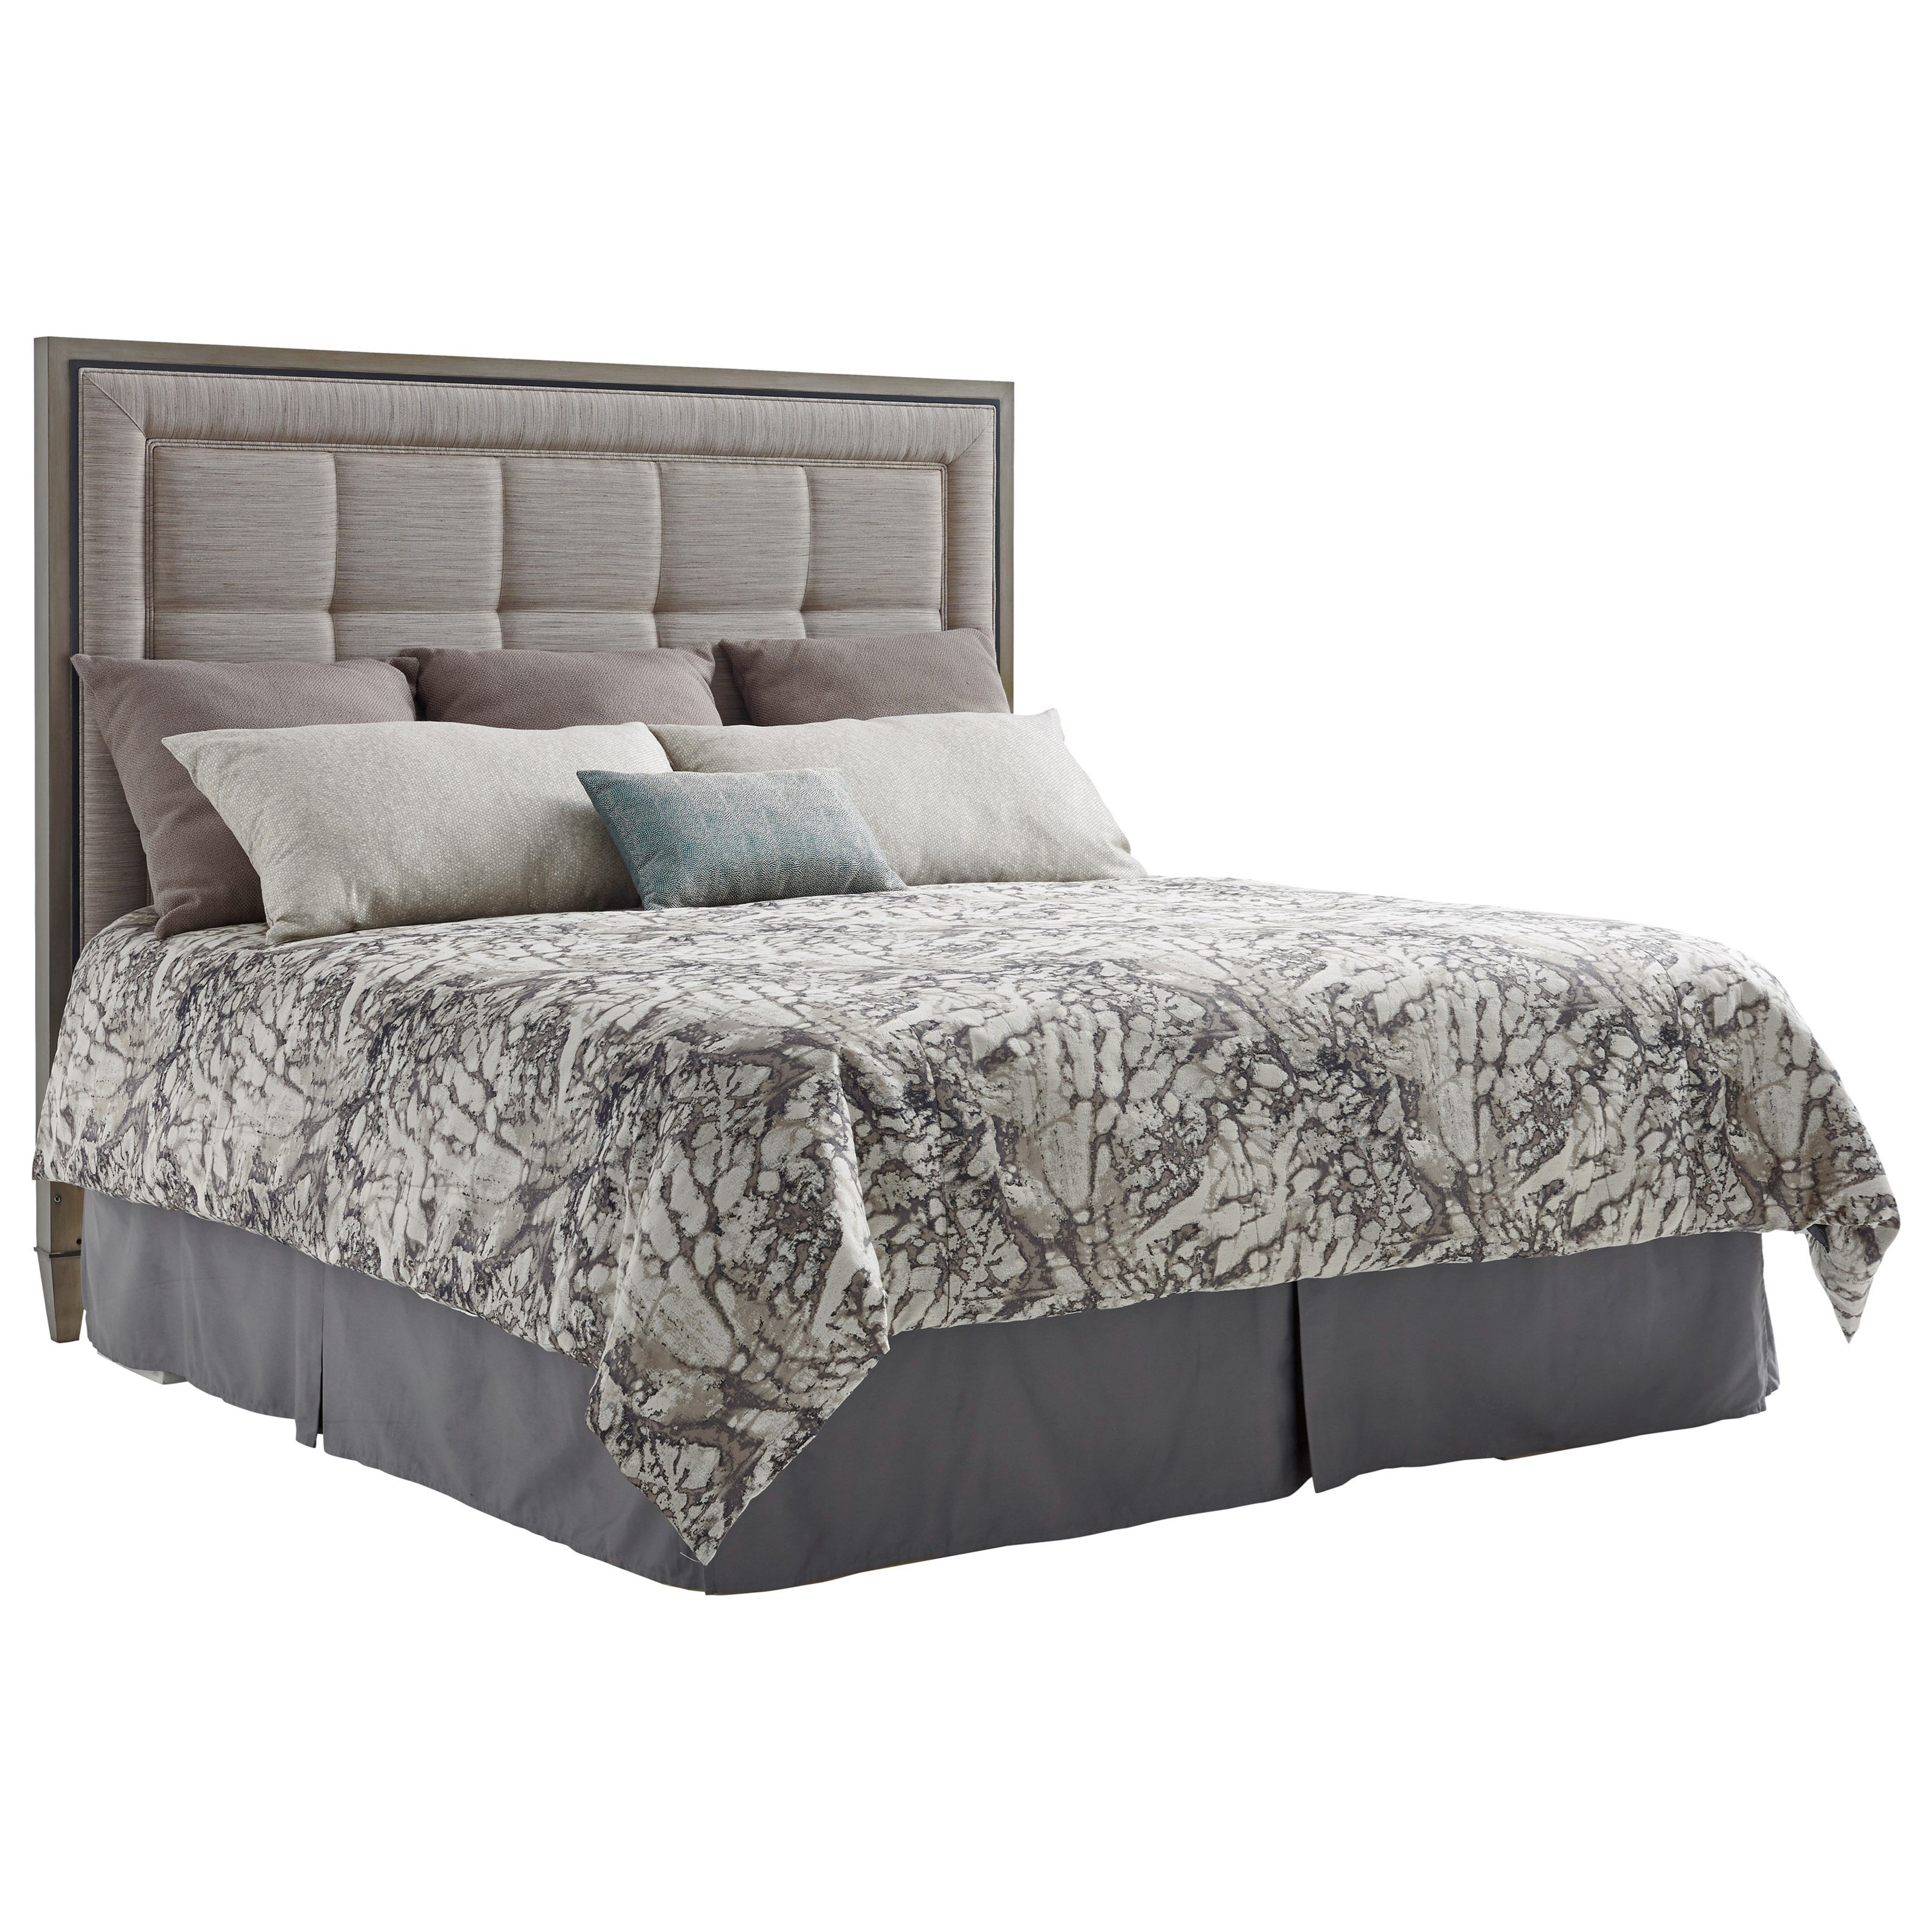 Ariana St. Tropez Upholstered Panel Headboard 6/6 by Lexington at Baer's Furniture